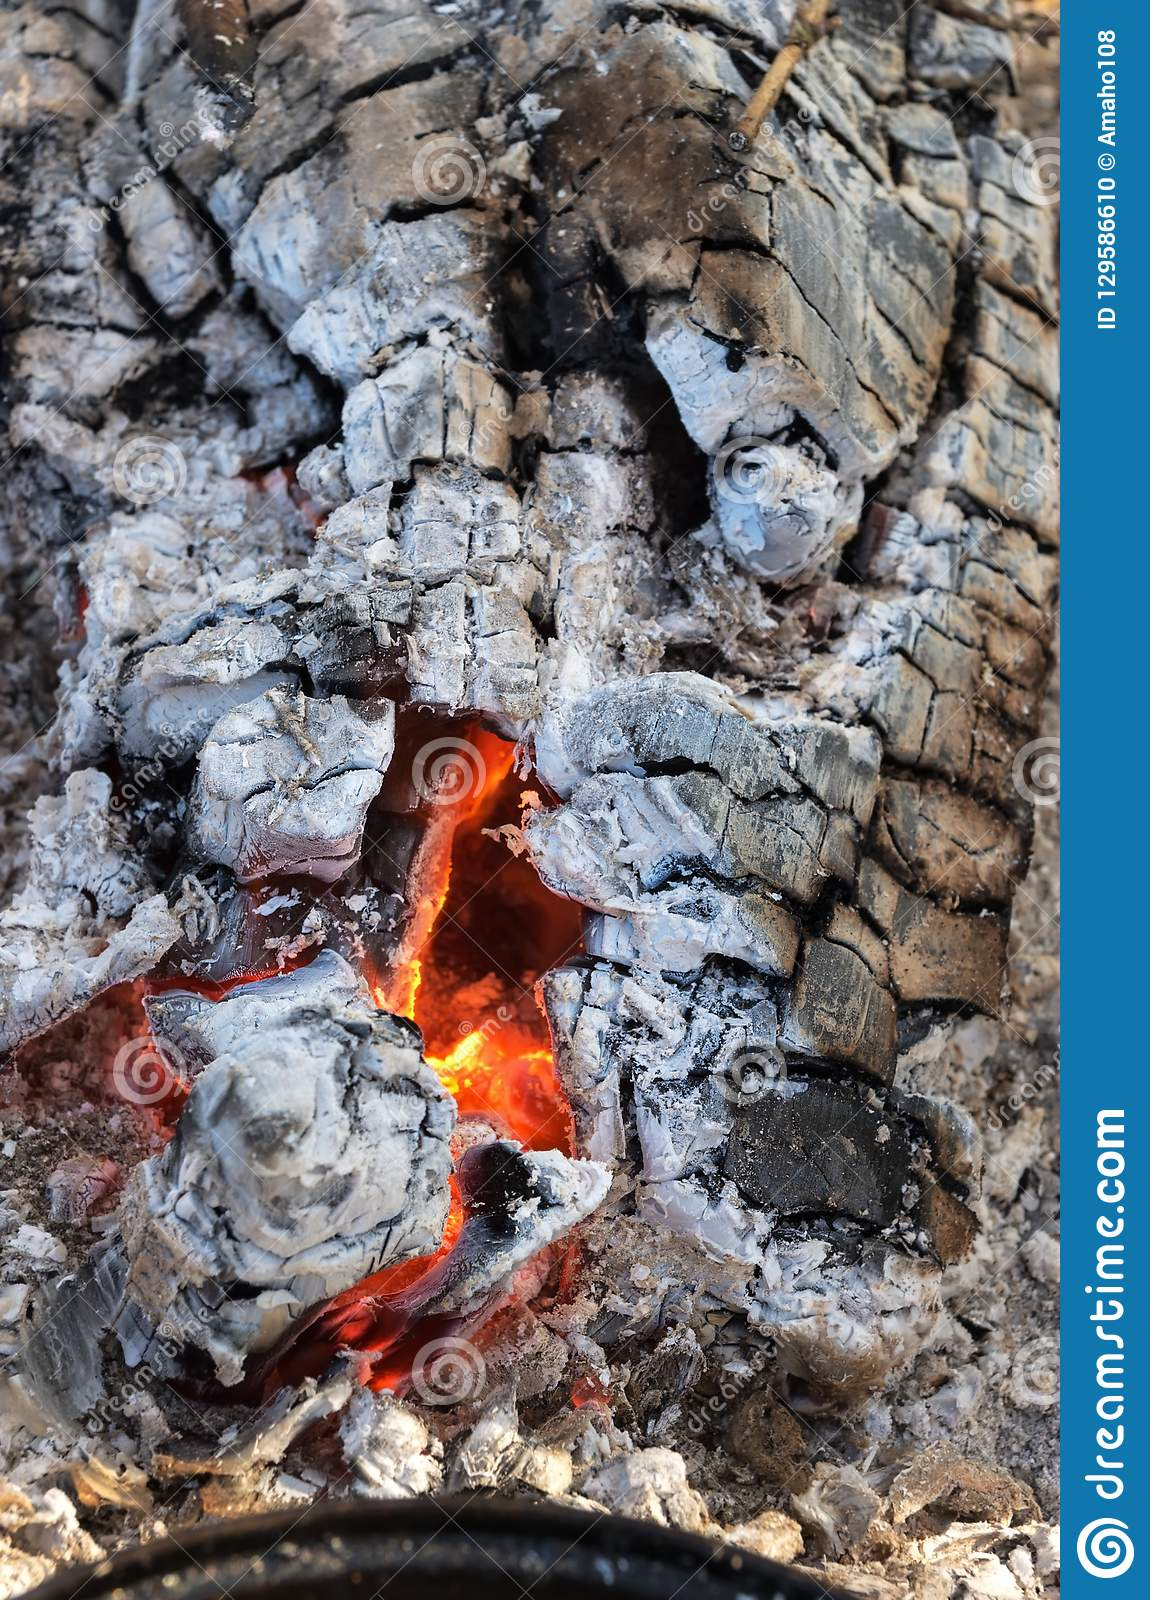 Closeup Of Burning Firewood With Charcoal And Hot Ashes